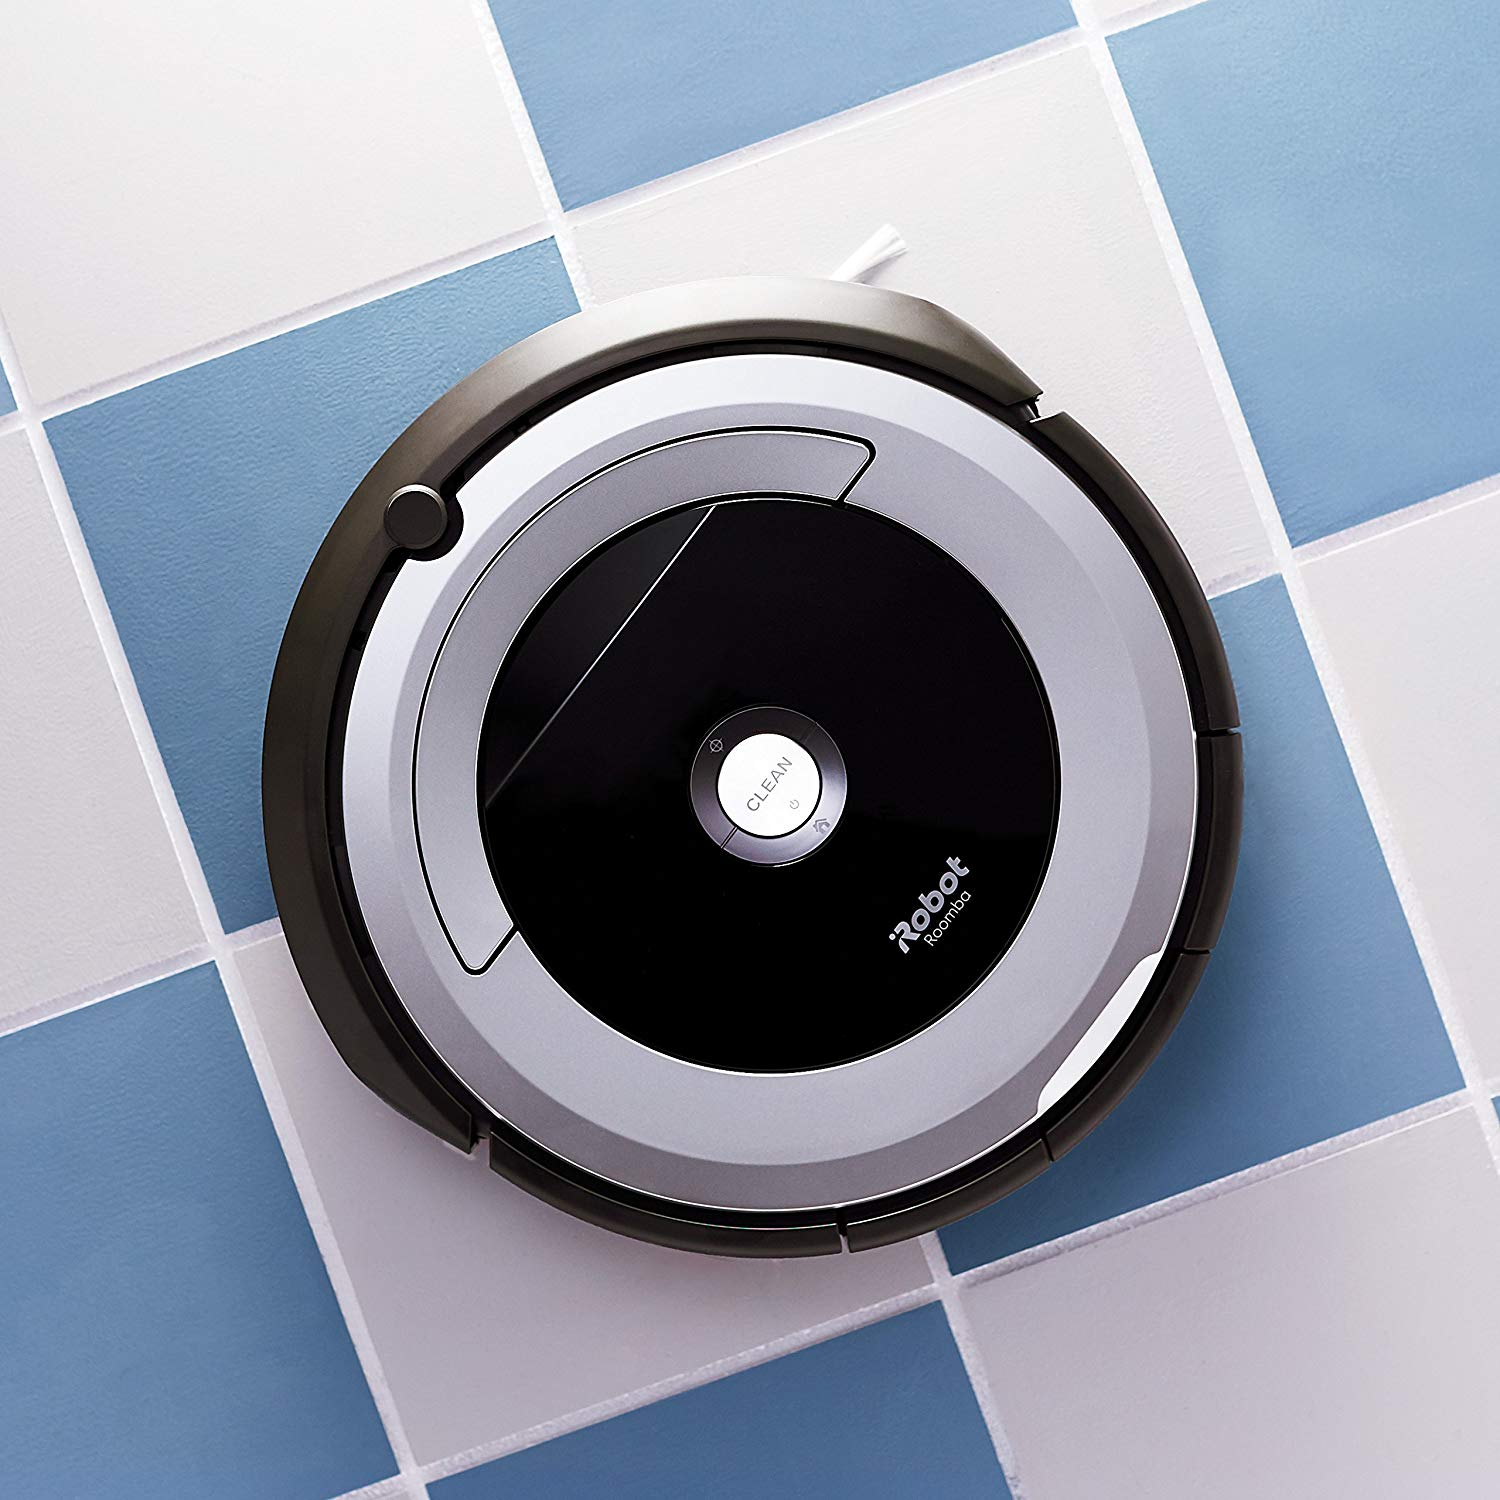 7 Best Roomba For Pet Hair Updated 2020 With Buying Guide